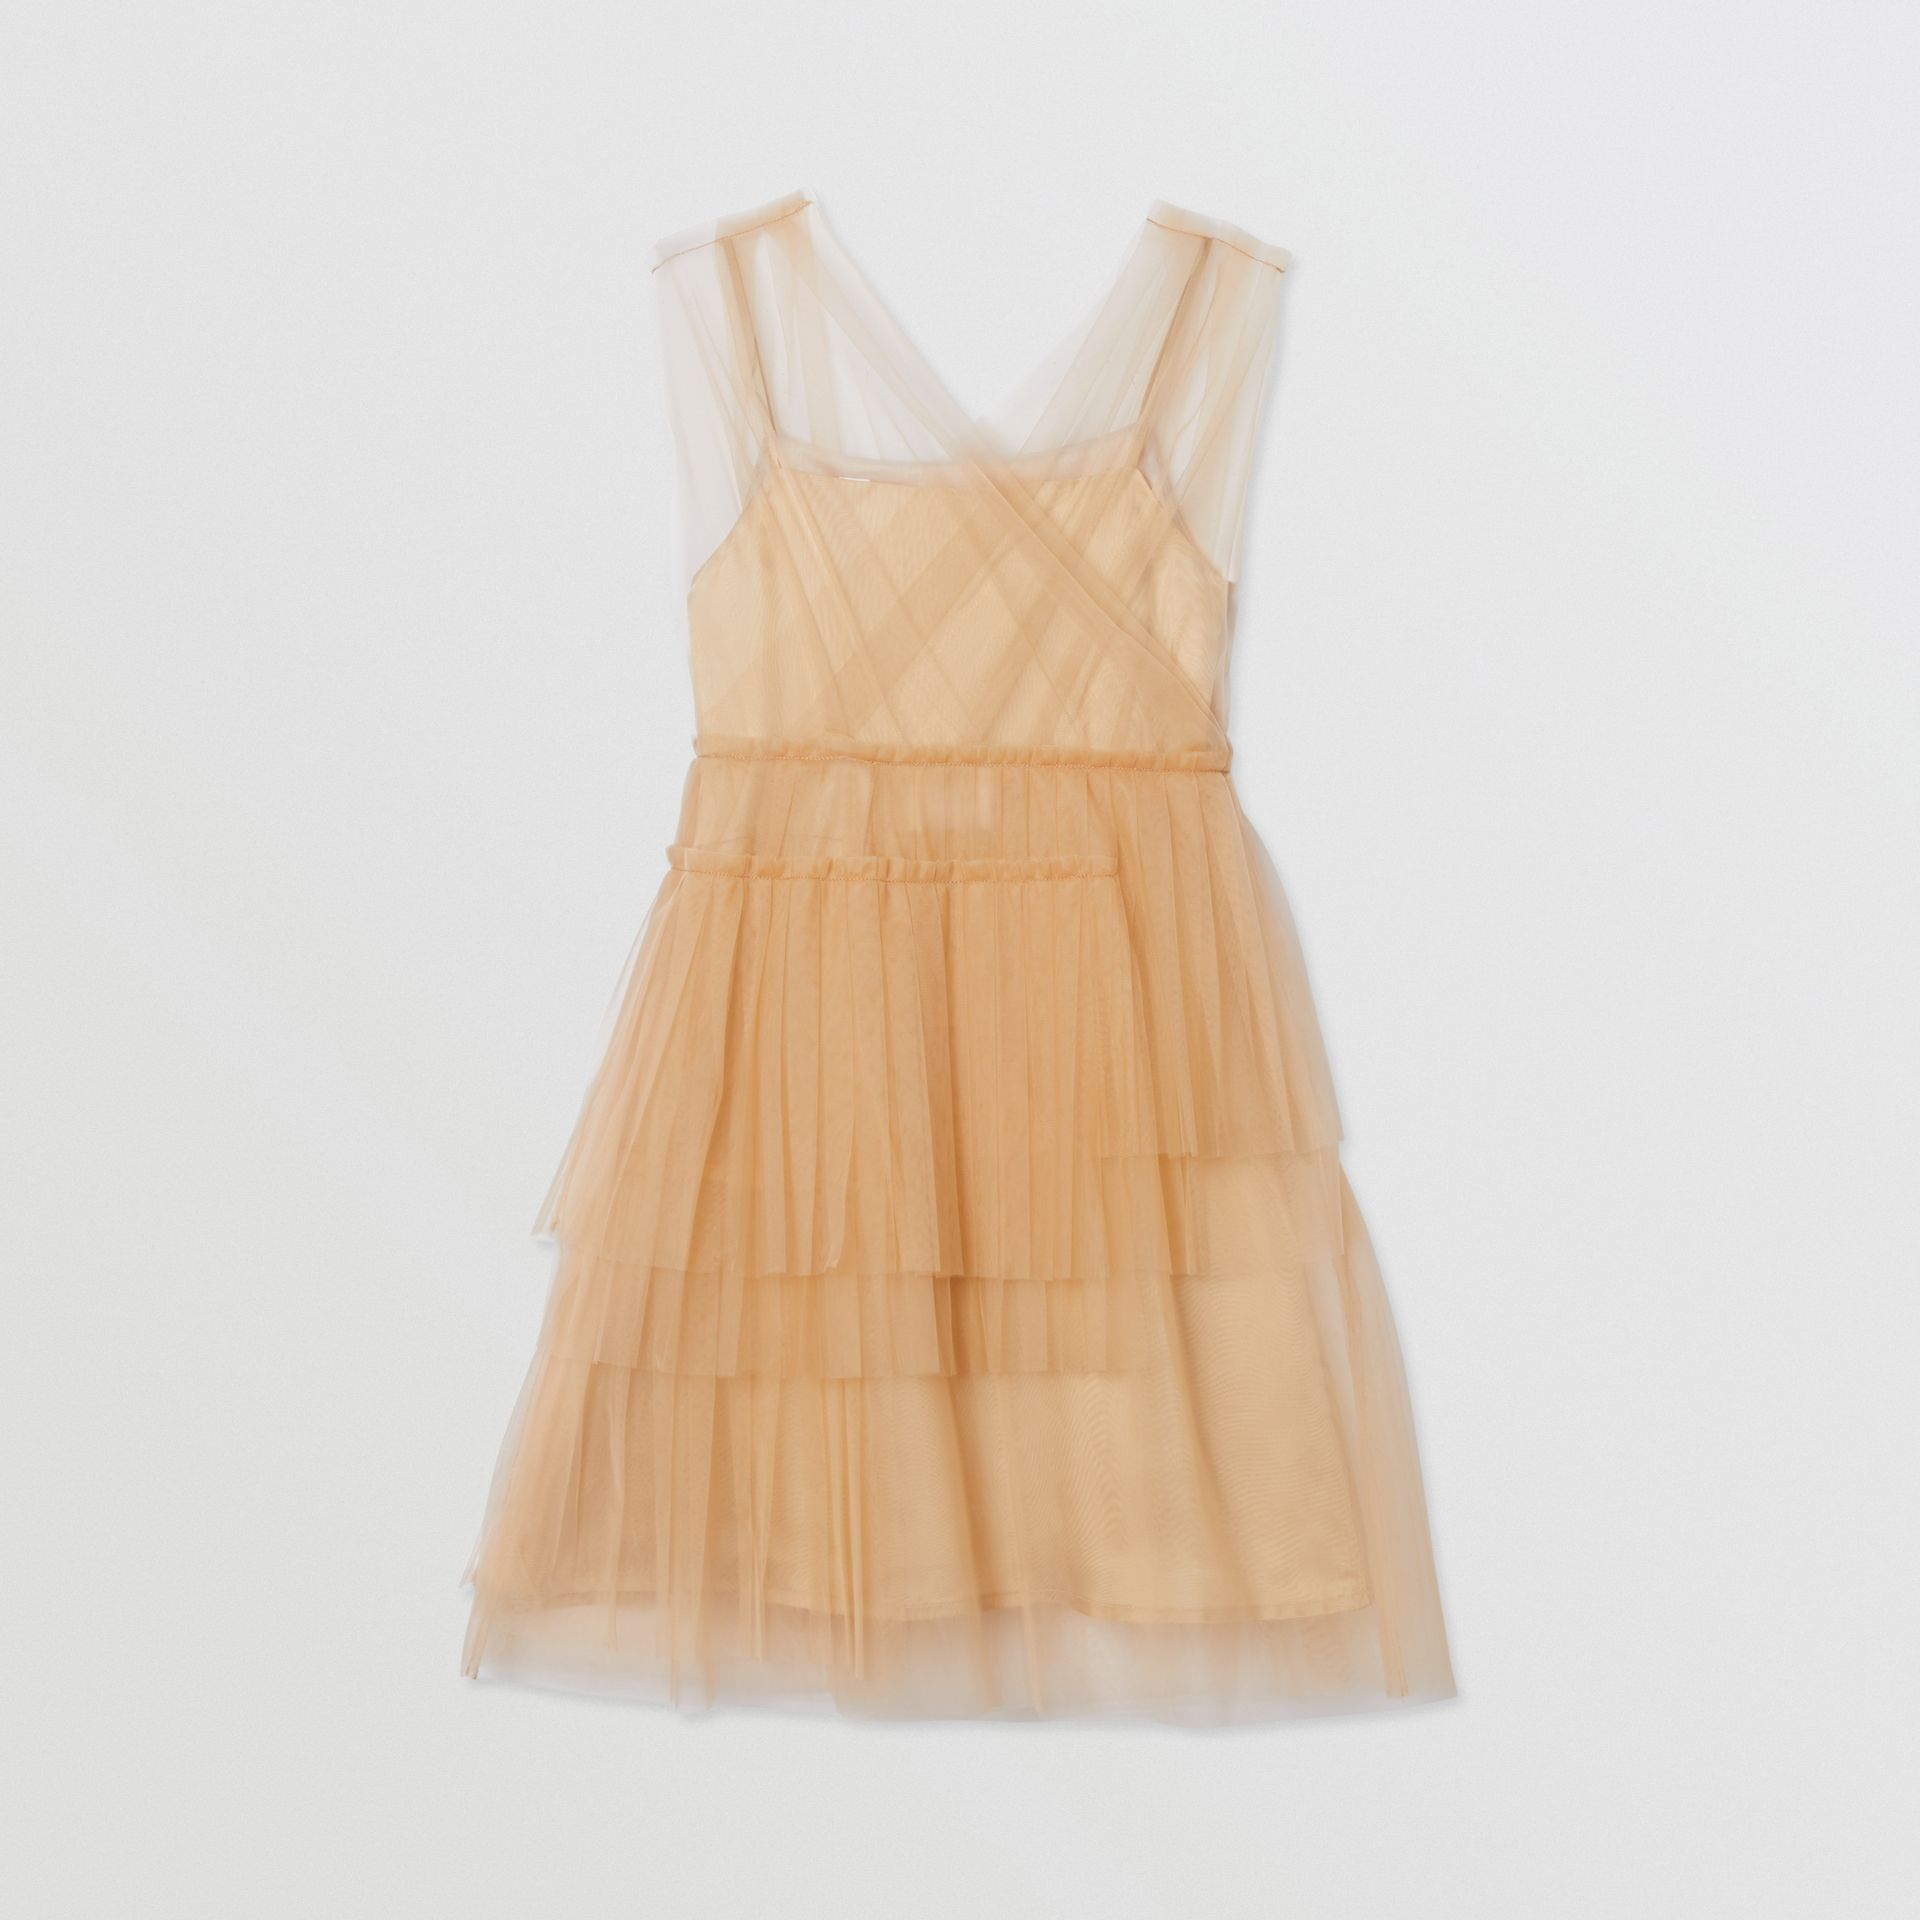 Tulle Tiered Dress in Oyster Beige | Burberry - gallery image 3